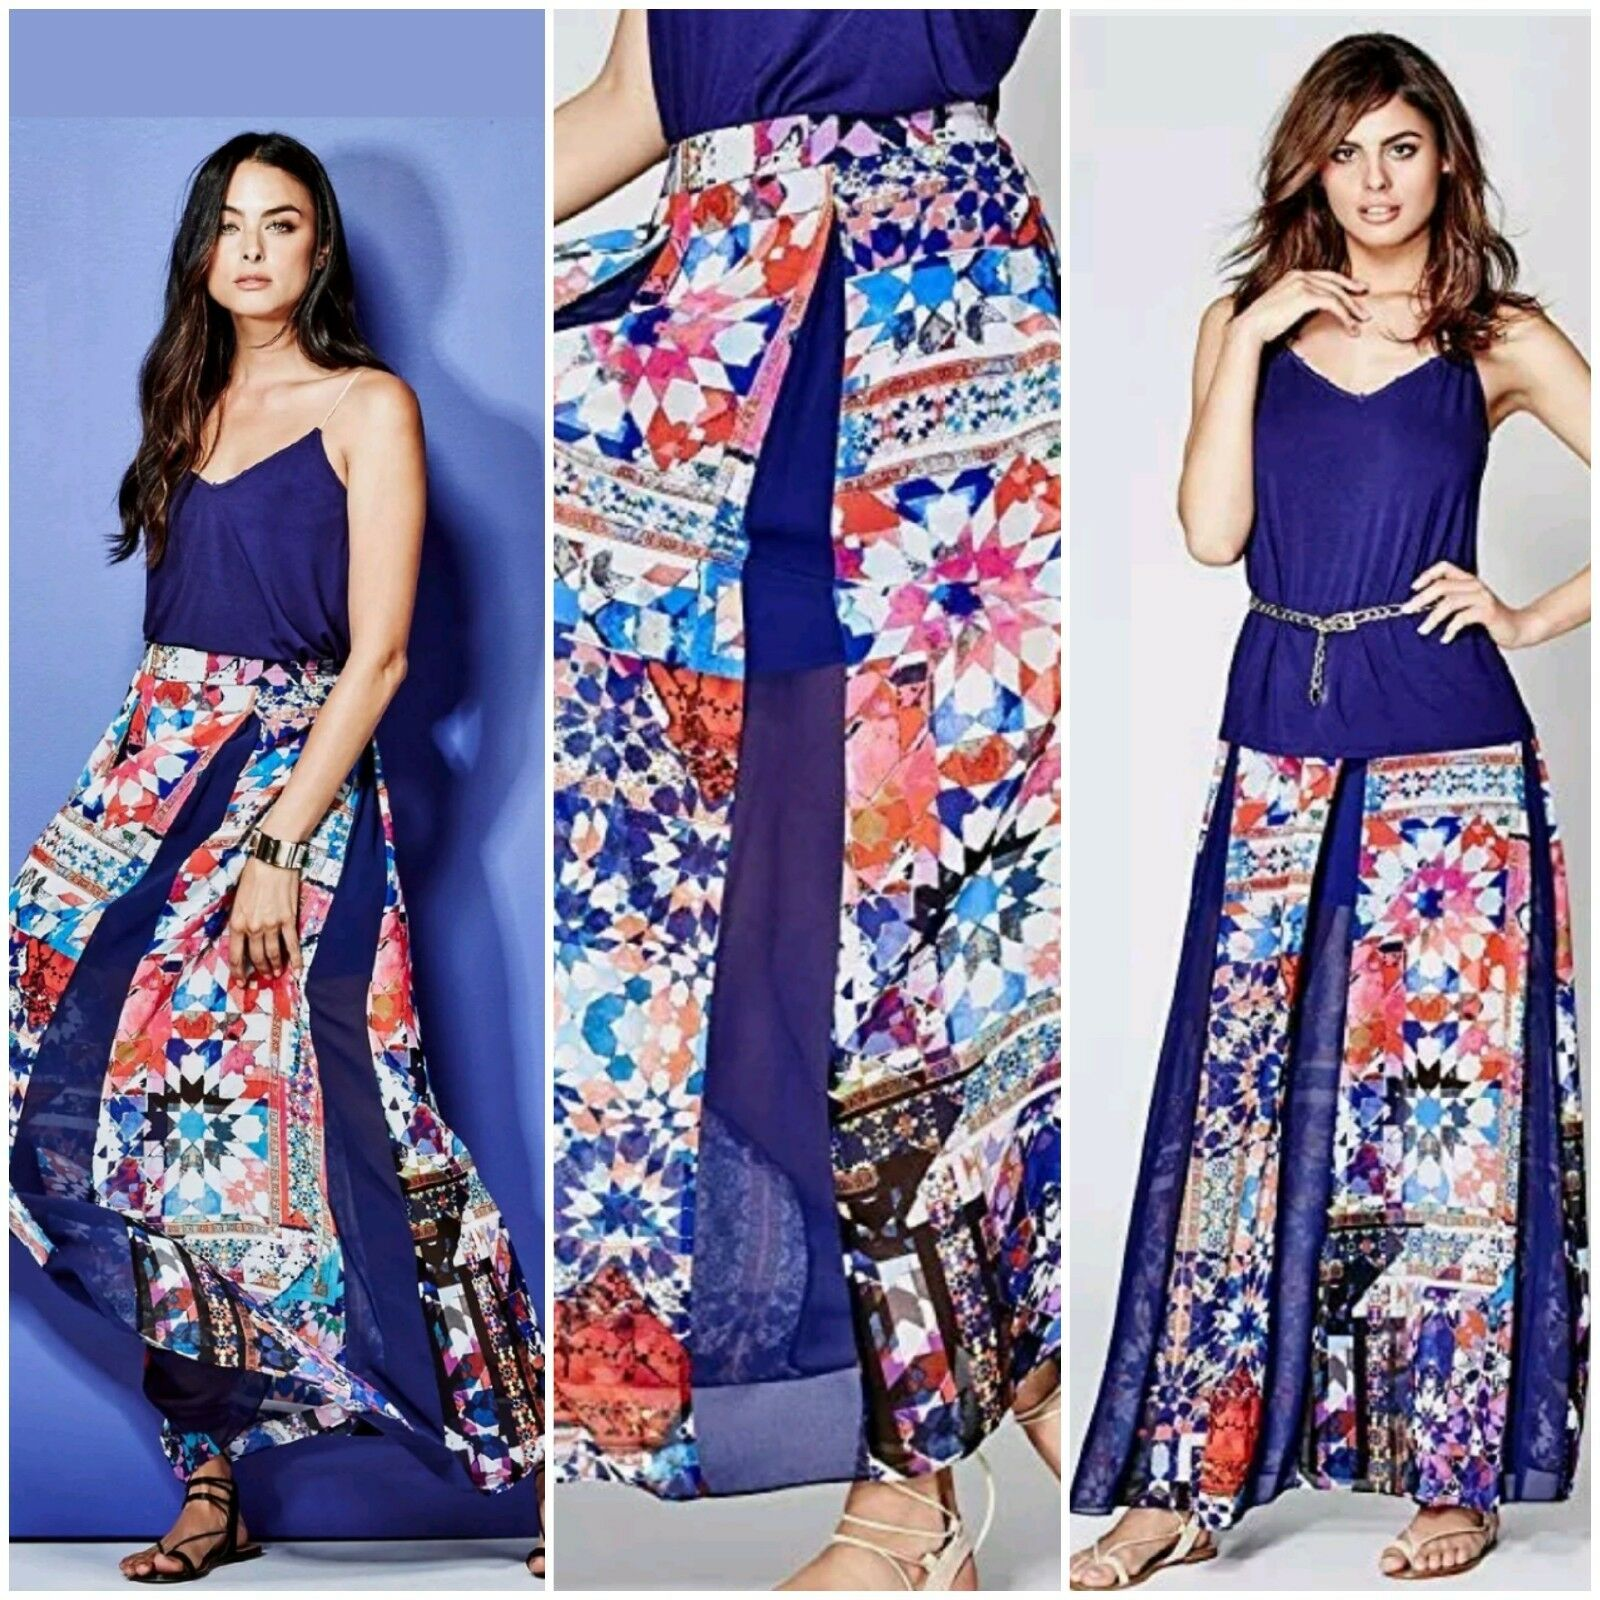 NWT GUESS BY MARCIANO  KALEIDOSCOPE  MAXI SKIRT SIZE S